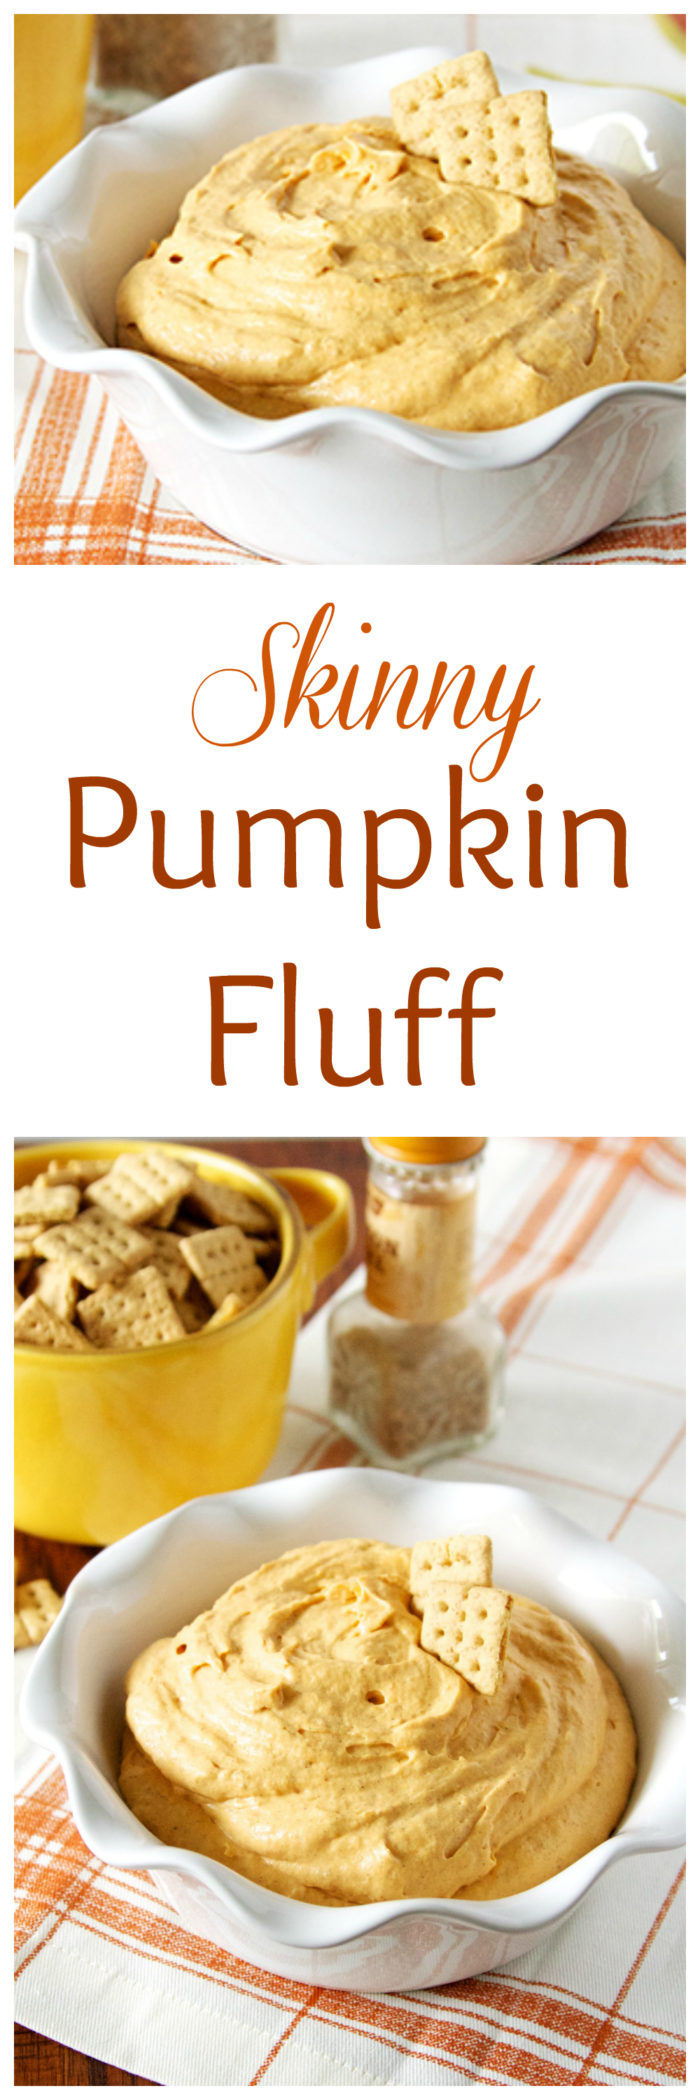 Our Skinny Pumpkin Fluff Recipe is your new bestie--it tastes like a dream and it's so simple to make too! by cookingwithruthie.com